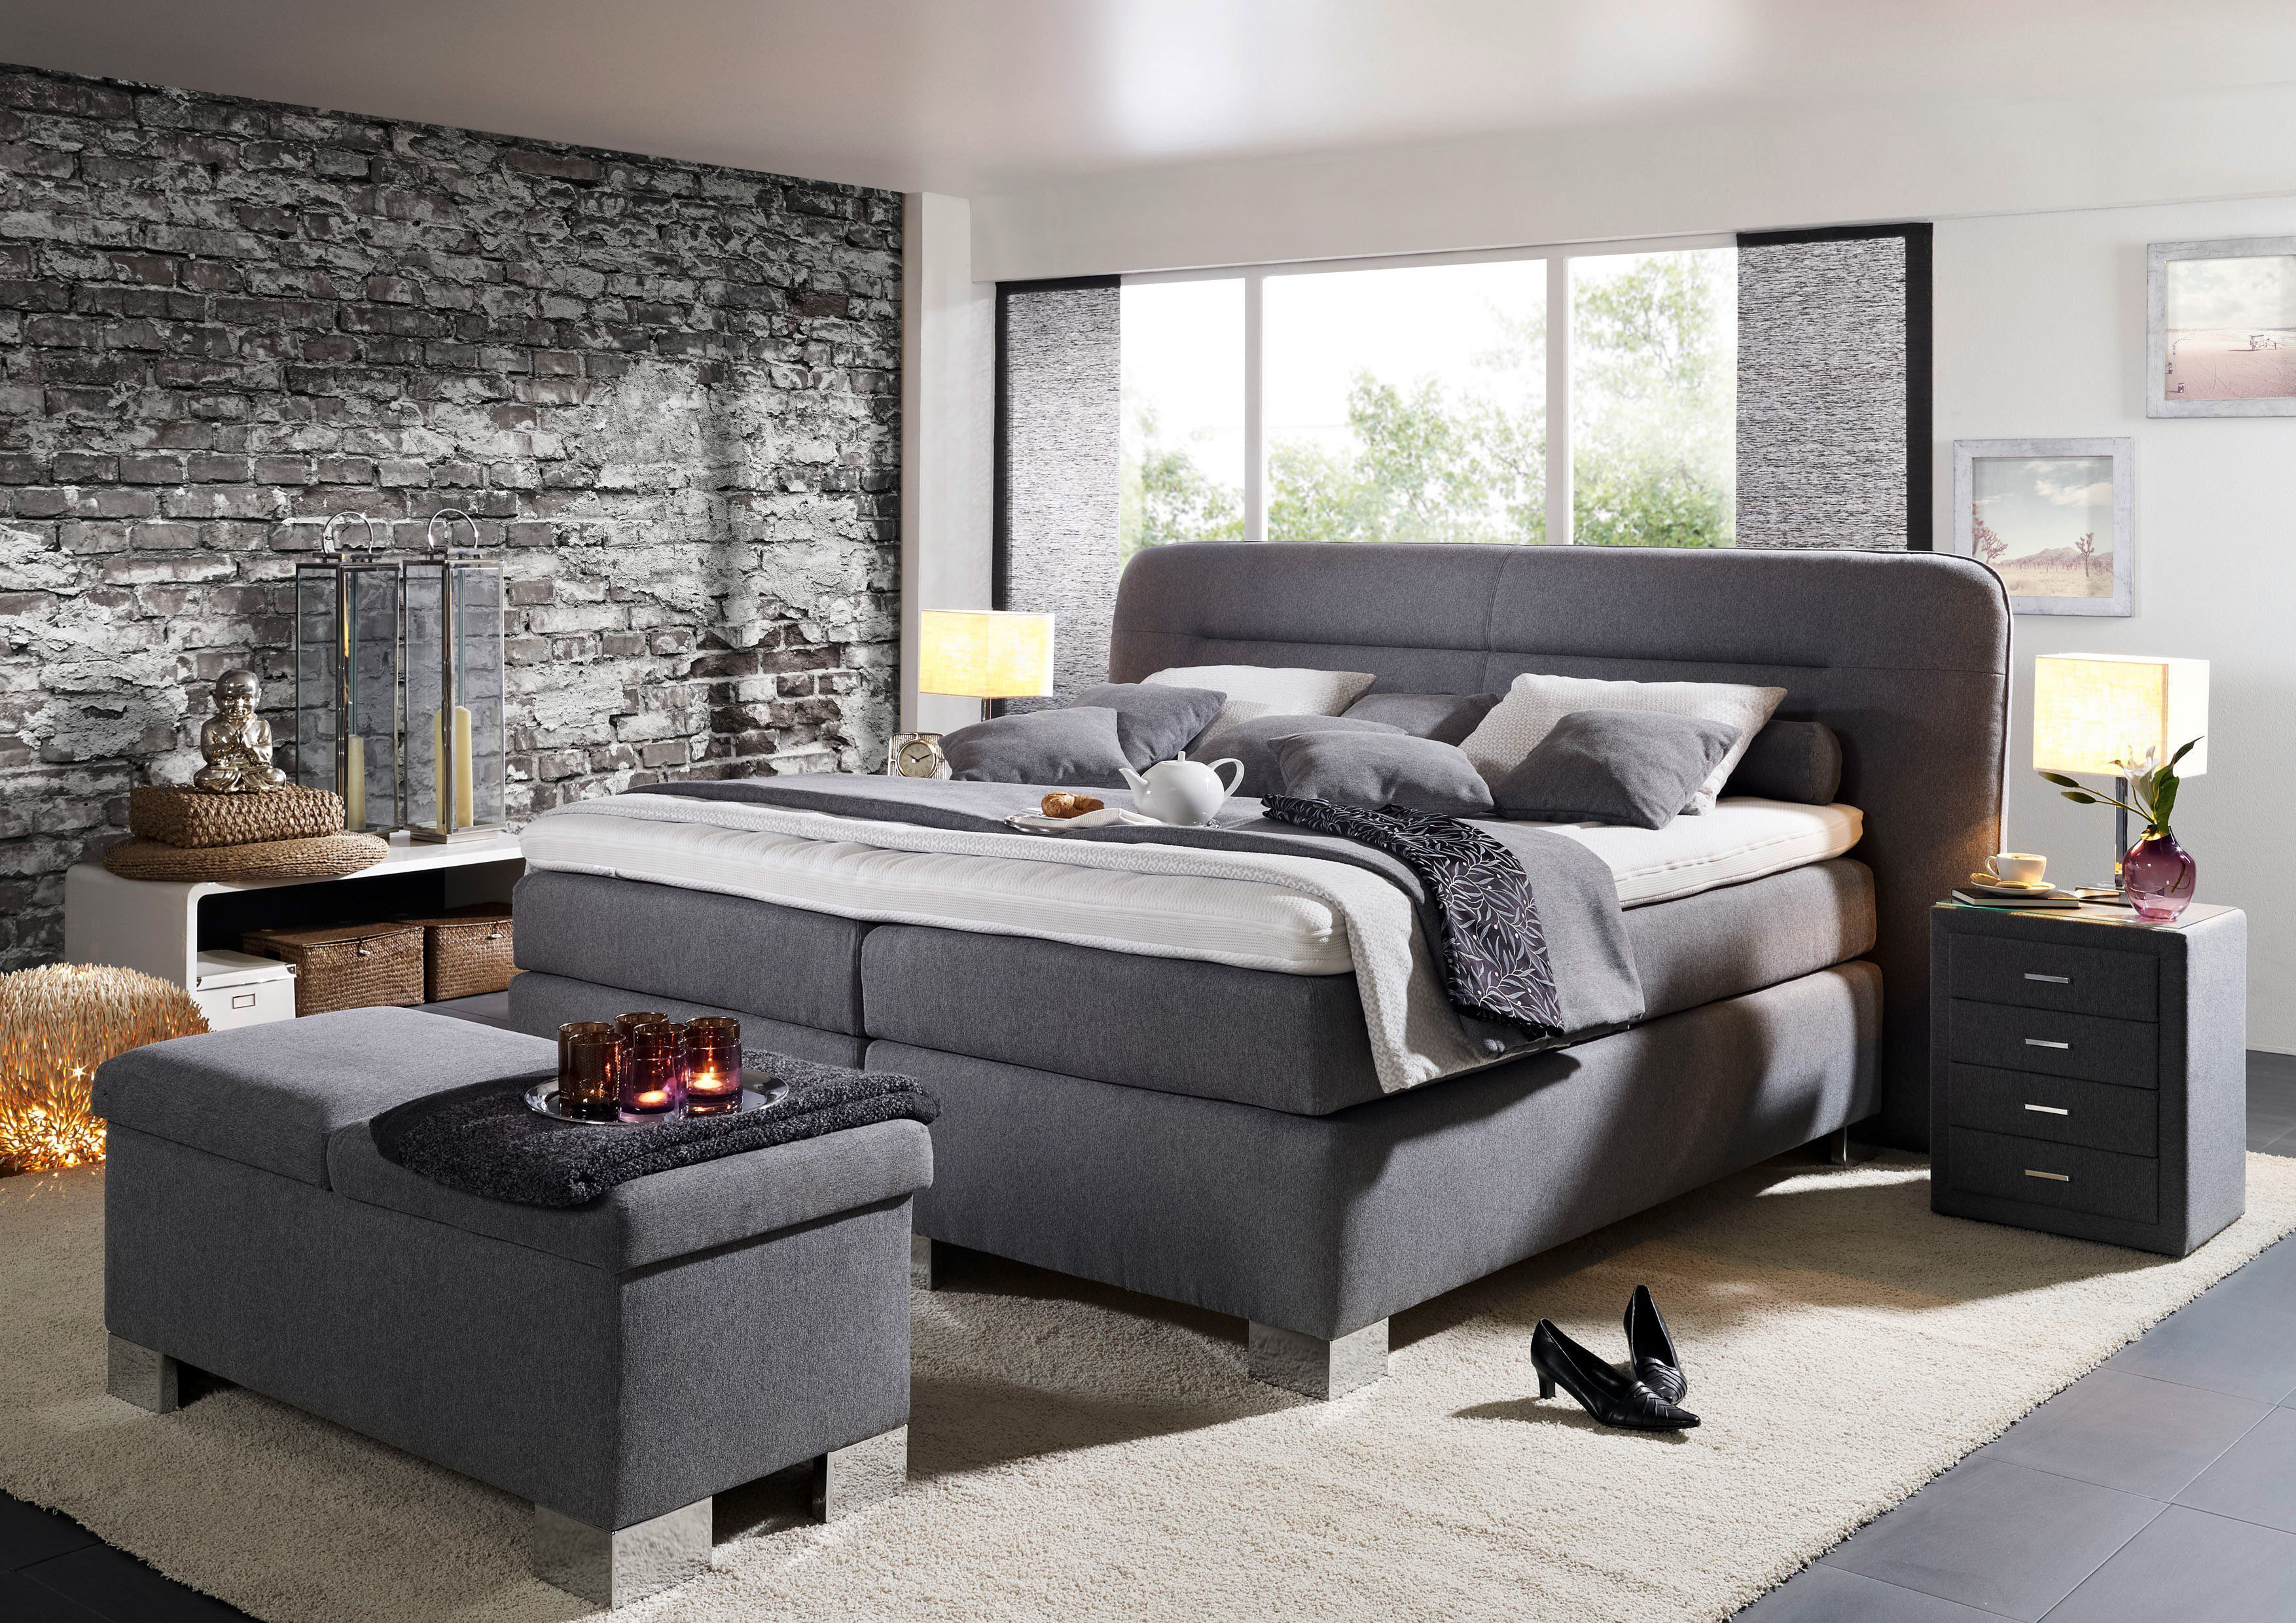 boxspringbett belcanto surpreme von oschmann in hellgrau m bel letz ihr online shop. Black Bedroom Furniture Sets. Home Design Ideas